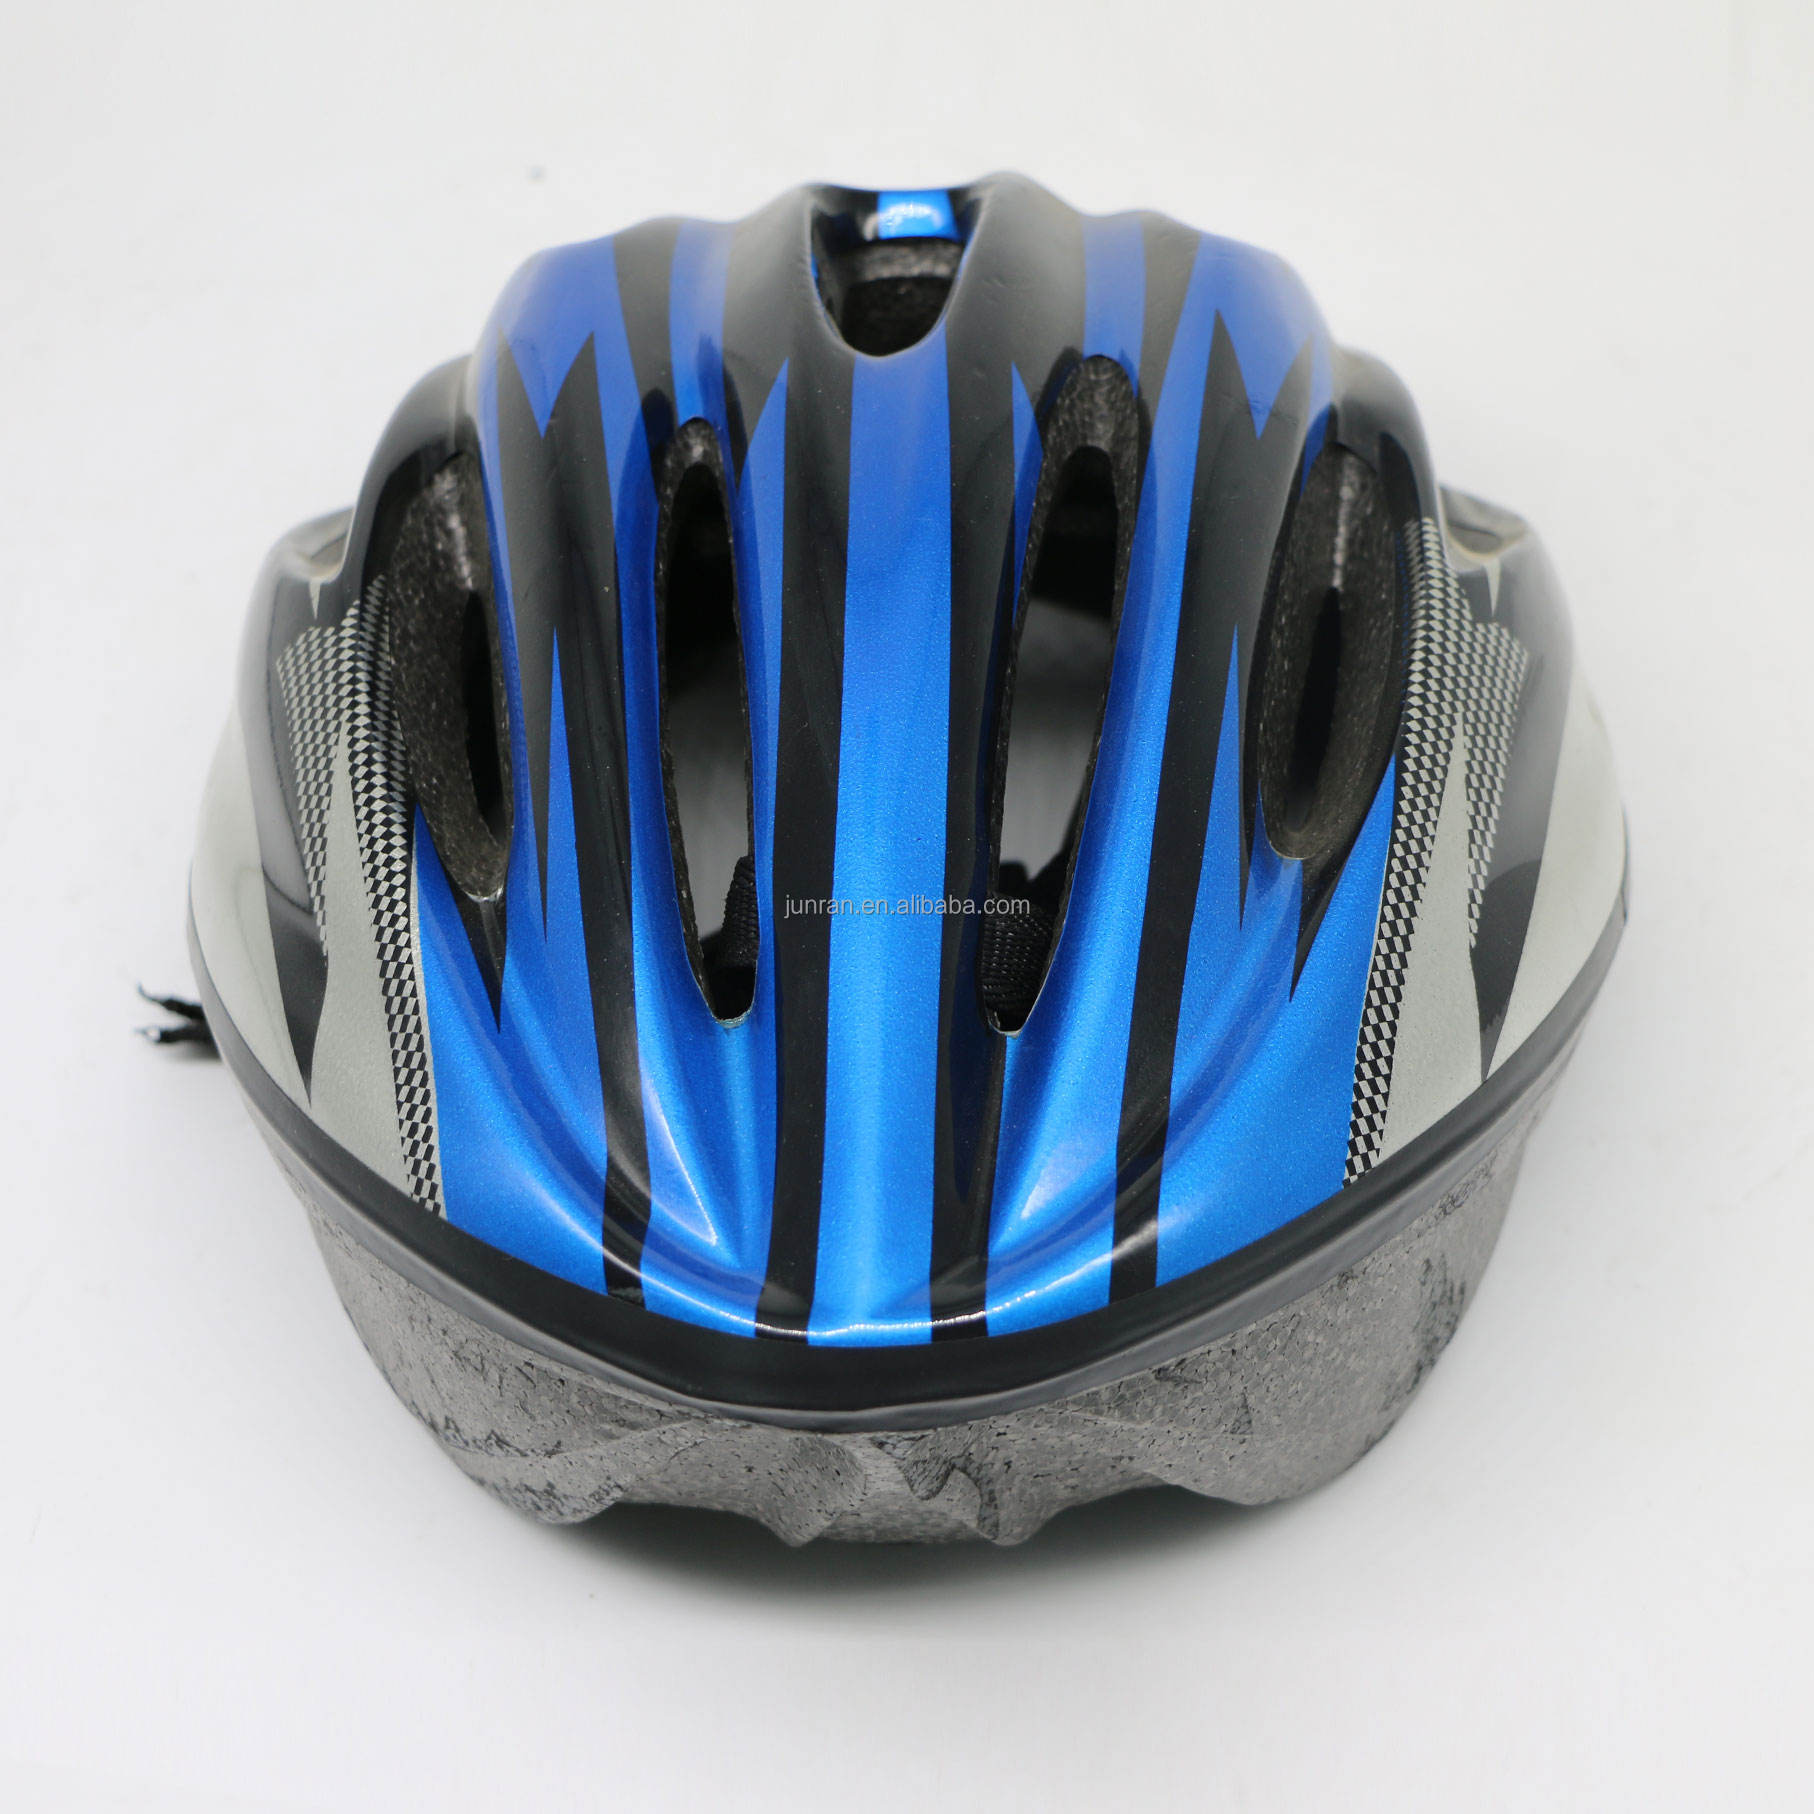 Cool triple eight brainsaver rubber helmet with sweatsaver liner